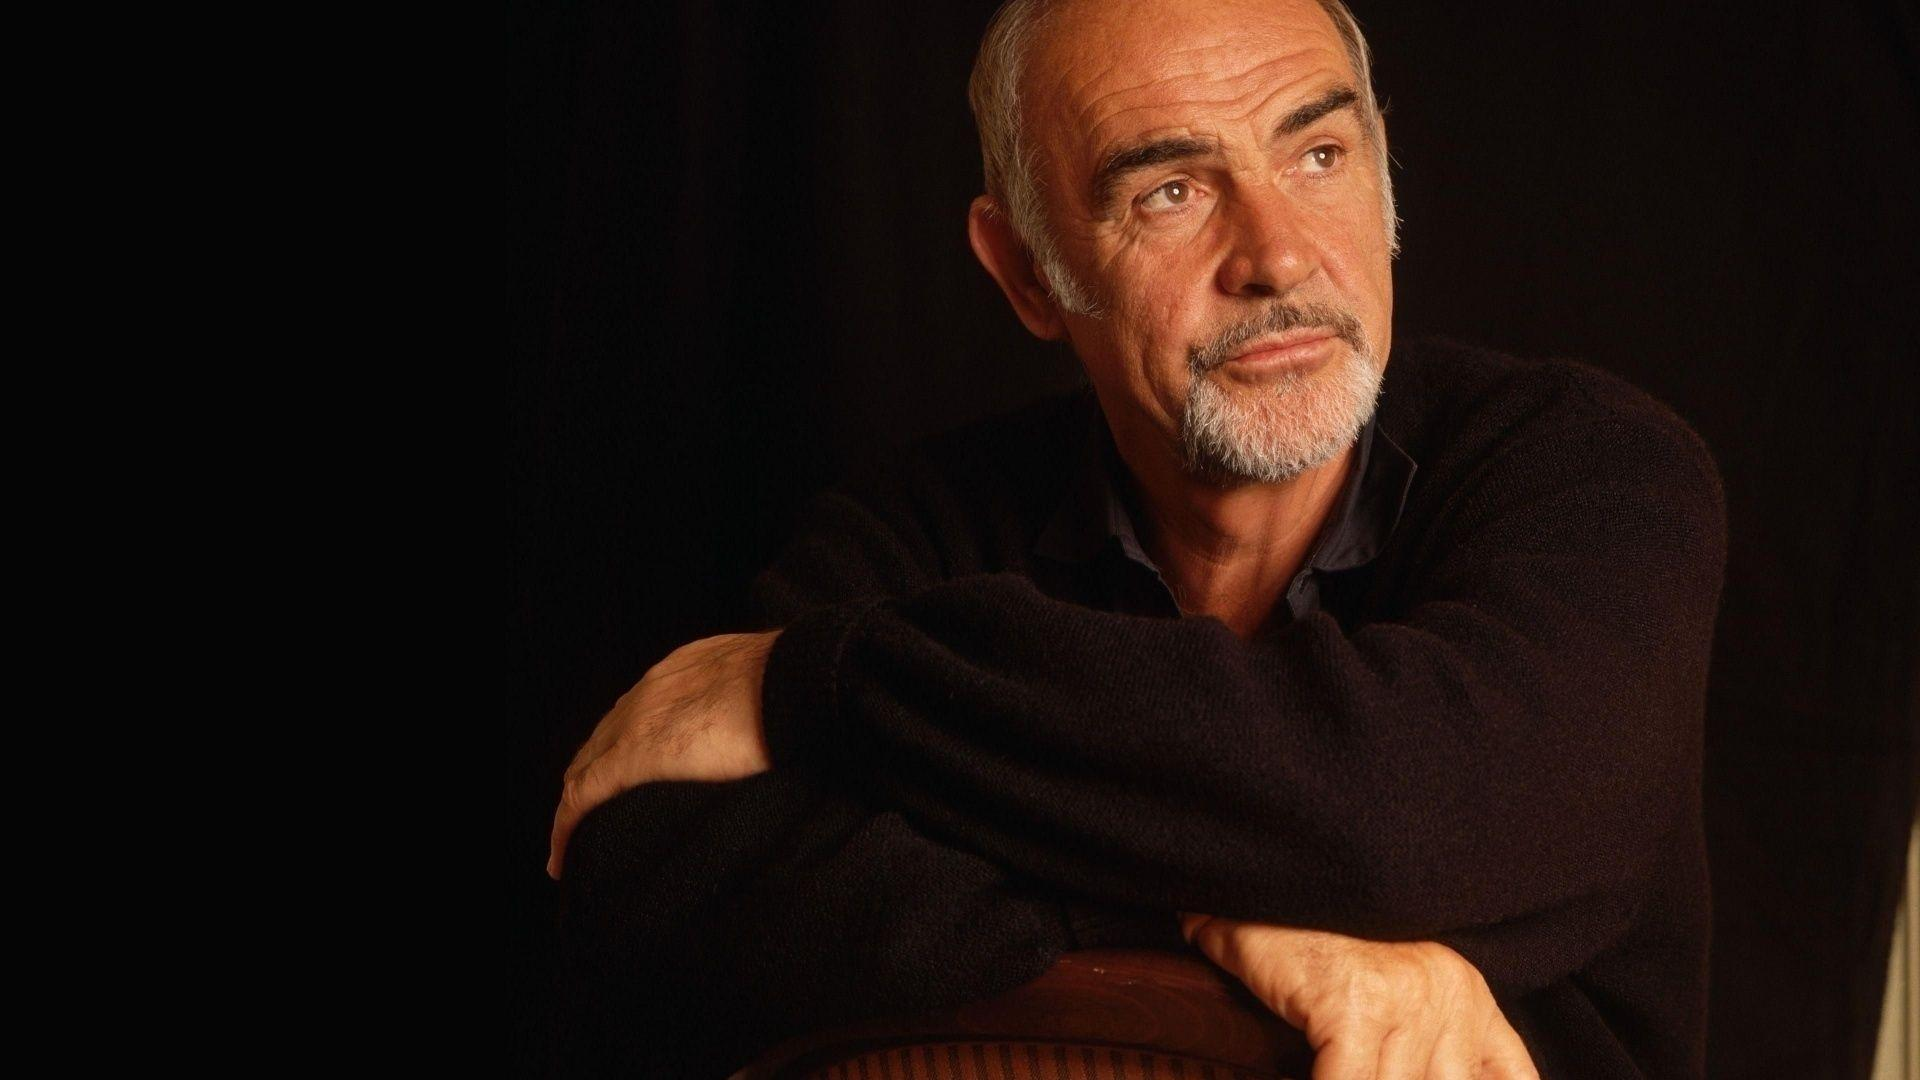 Download Wallpaper 1920x1080 Sean connery, Man, Actor, Producer ...